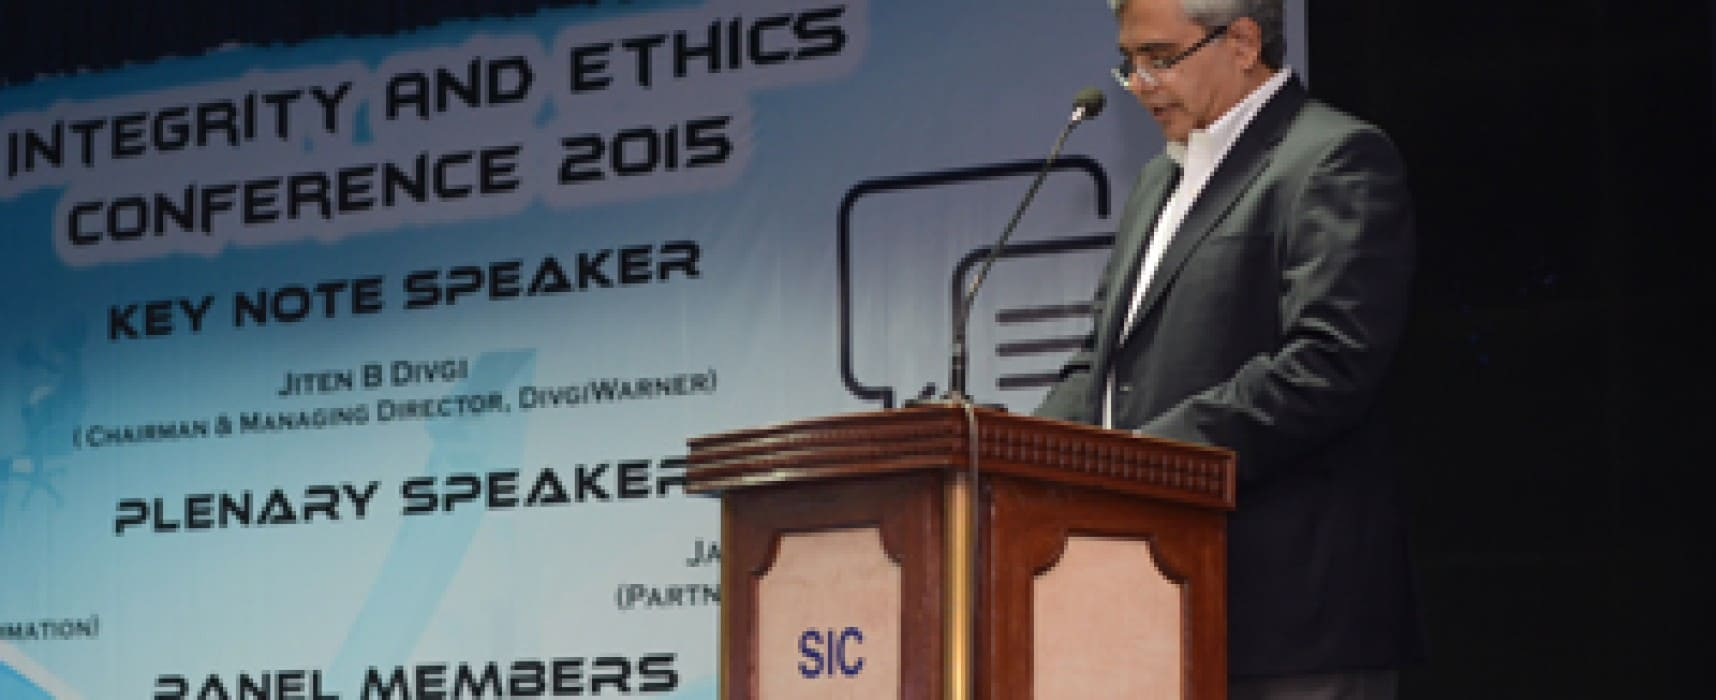 Integrity and Ethics Conference 2015 at SCIT